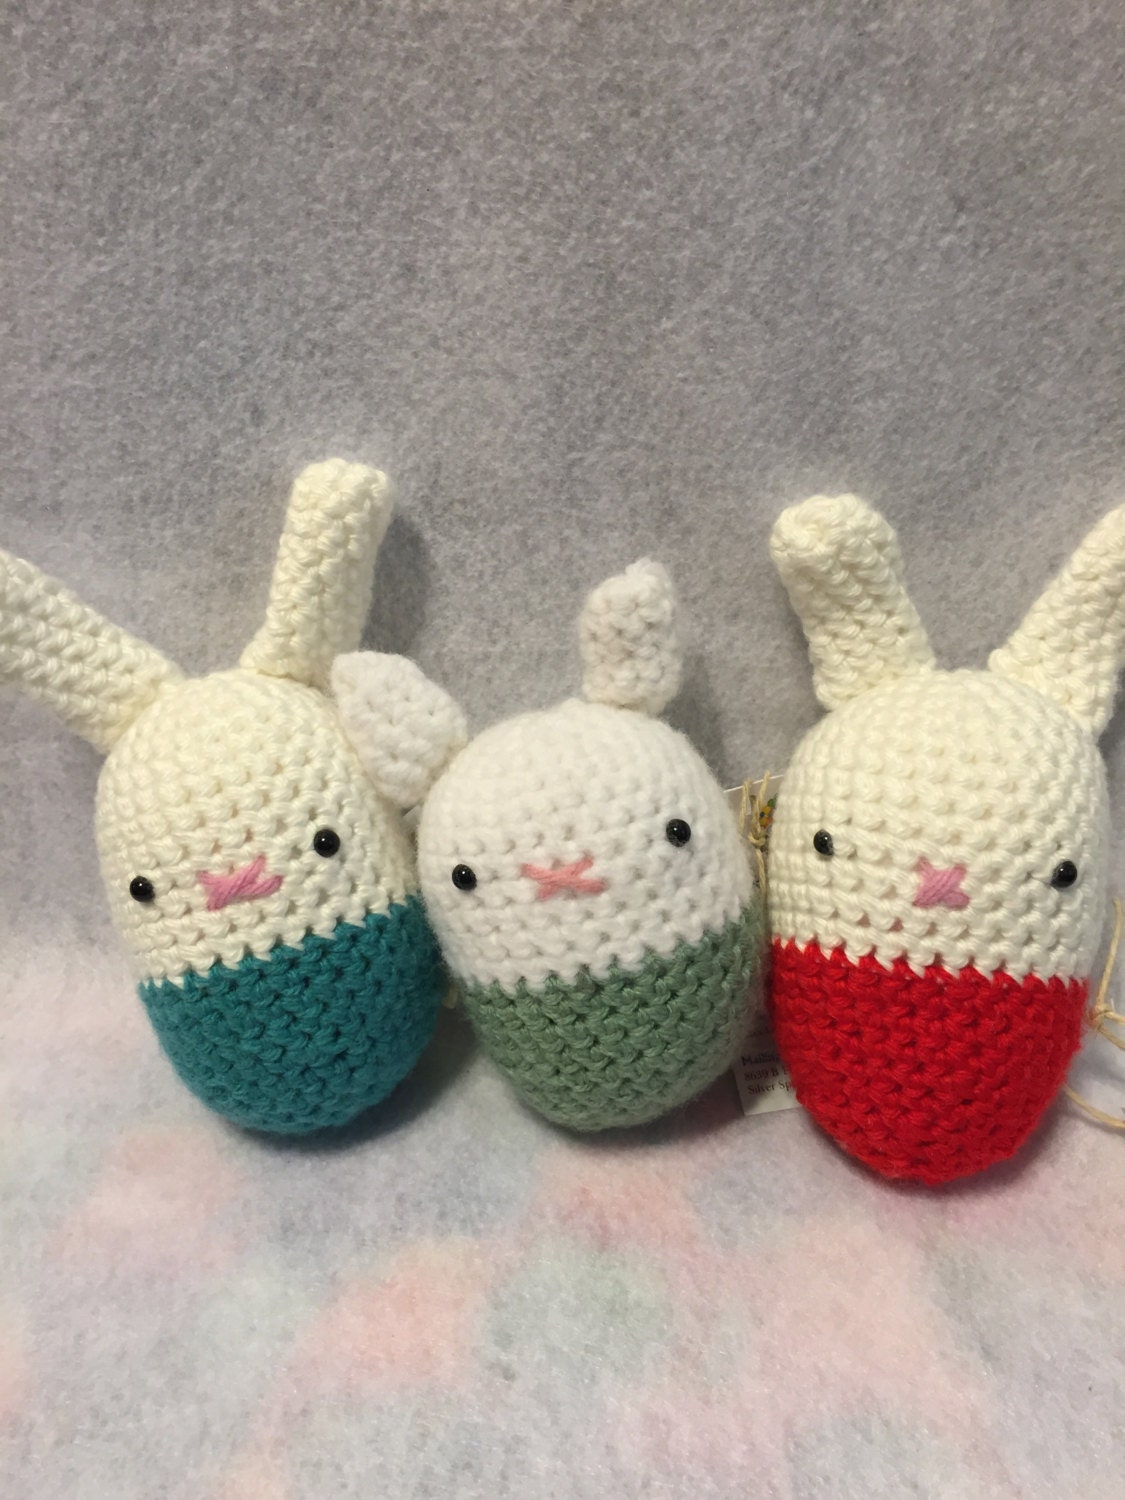 Amigurumi Stuffing : Amigurumi Egg Shaped Bunny Stuffed Animal with by ...